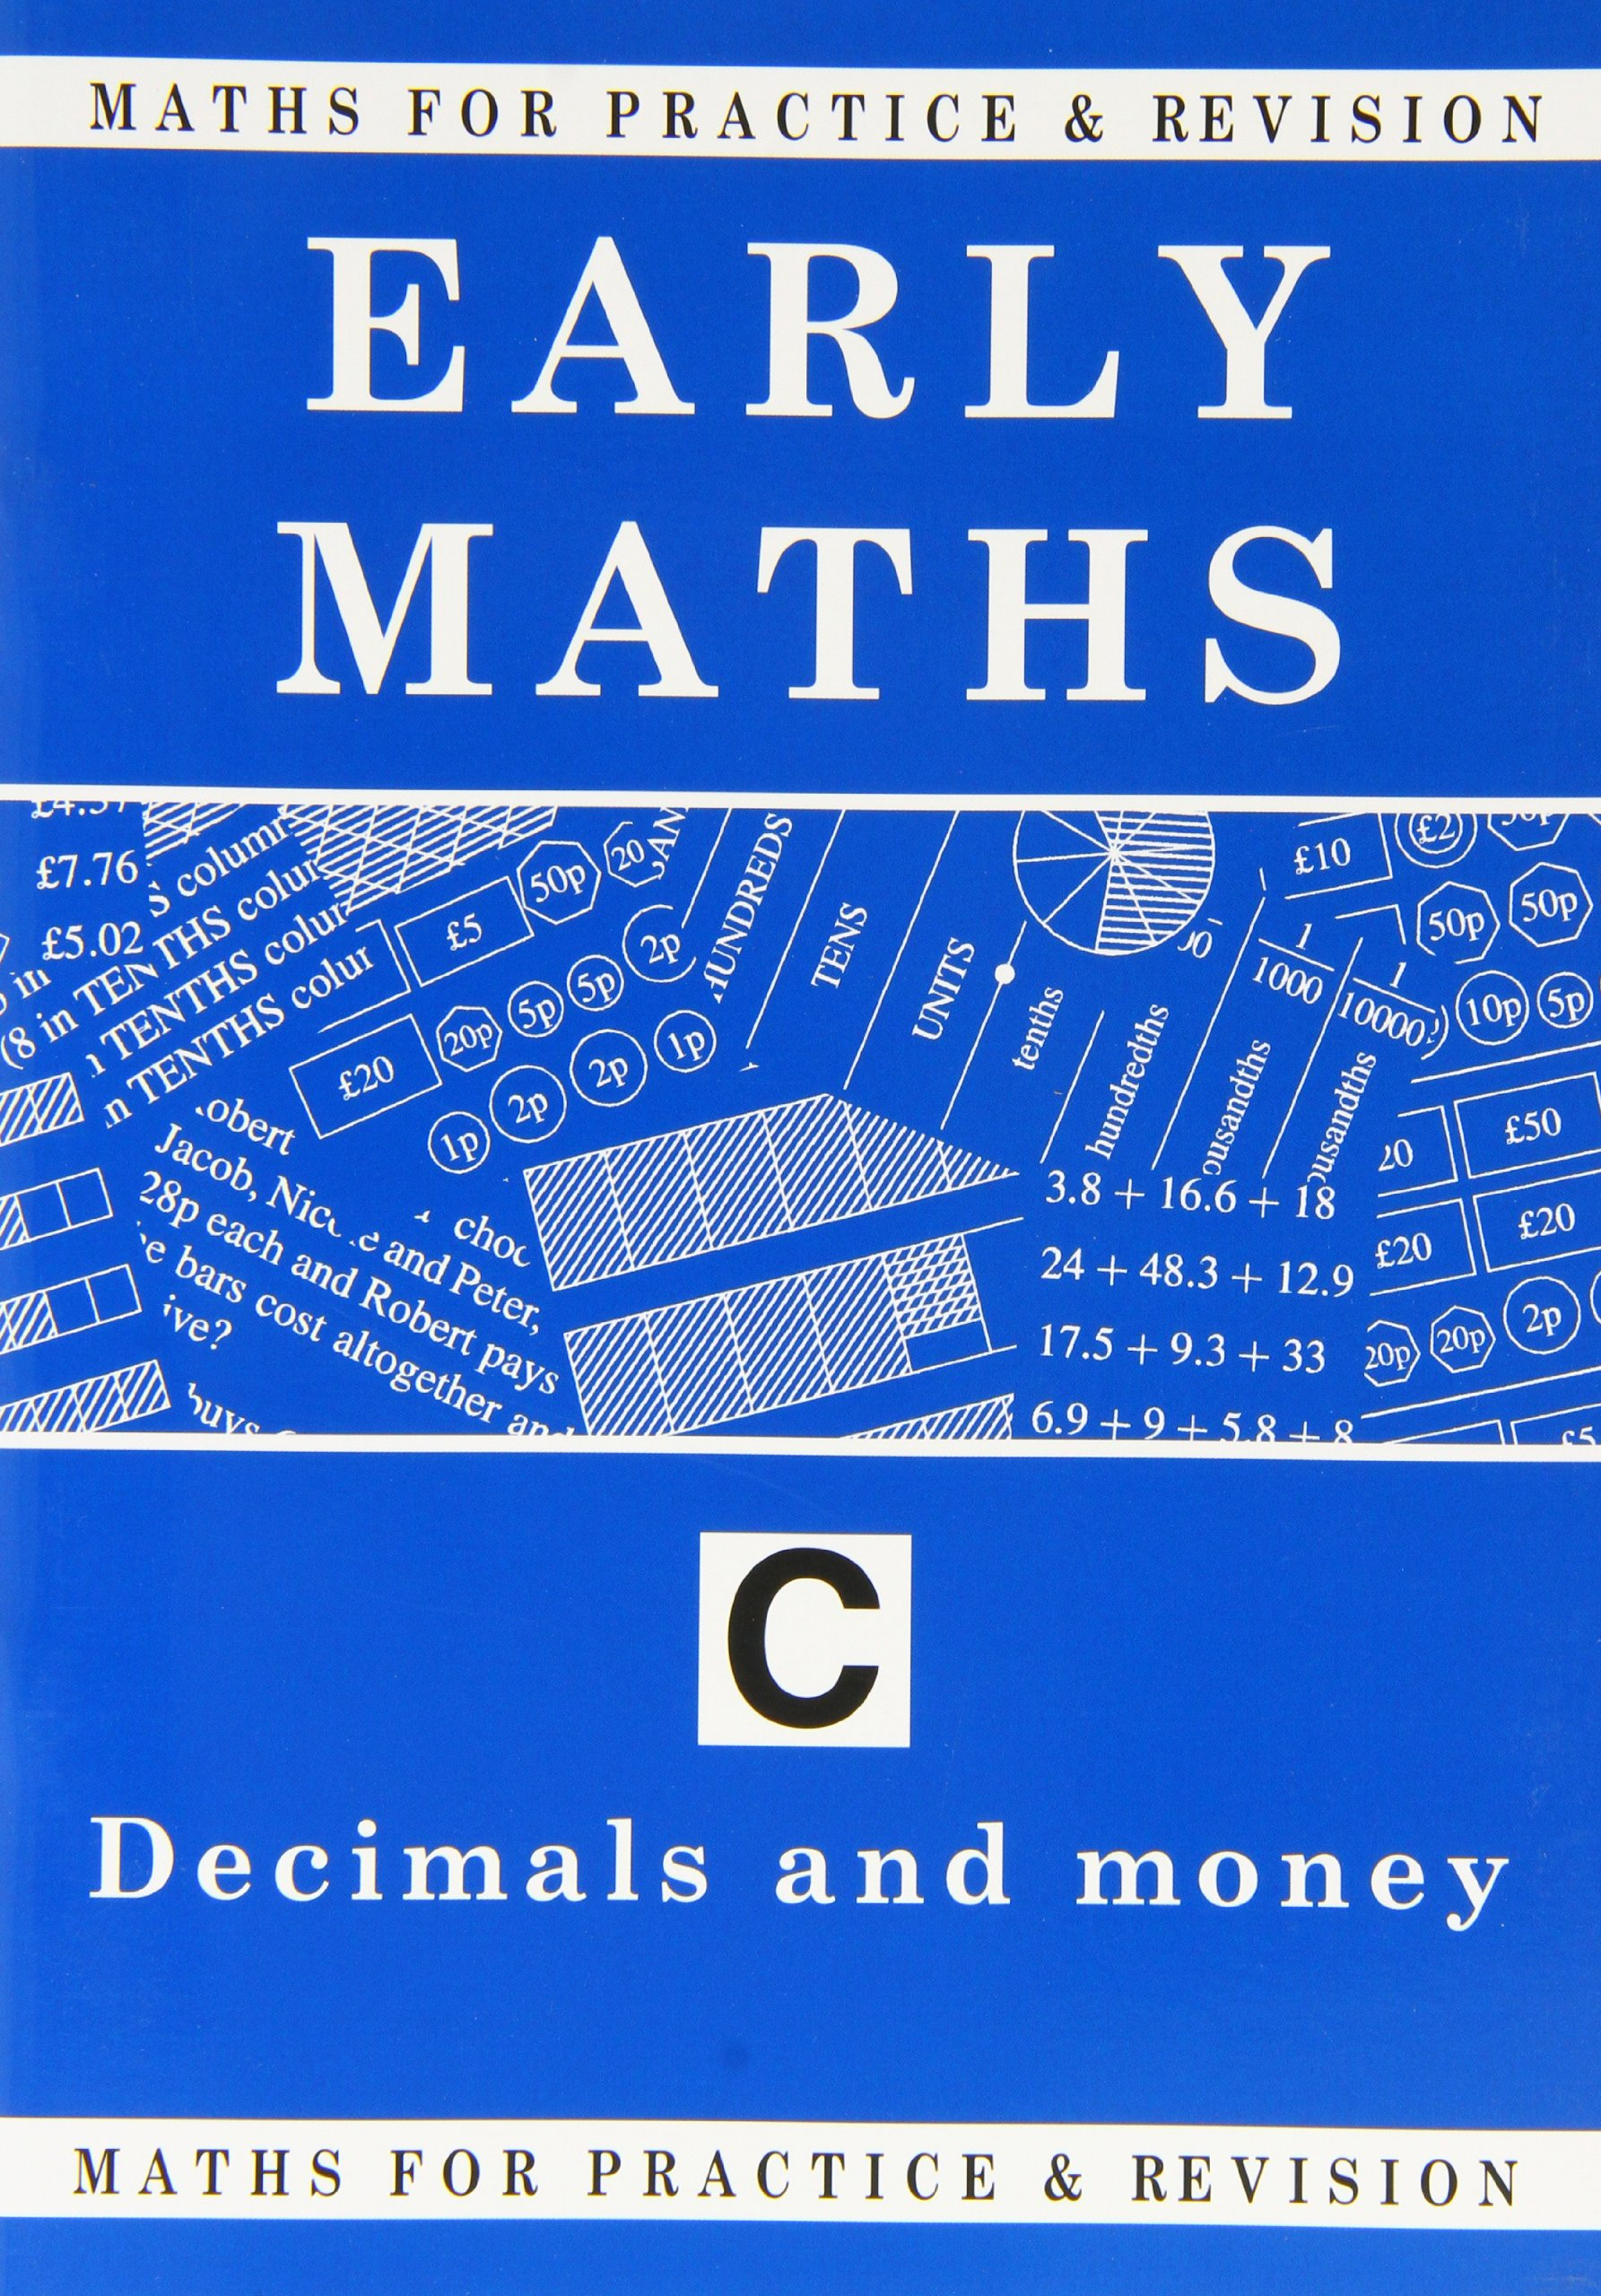 Download Maths for Practice and Revision: Early Maths Bk. C PDF